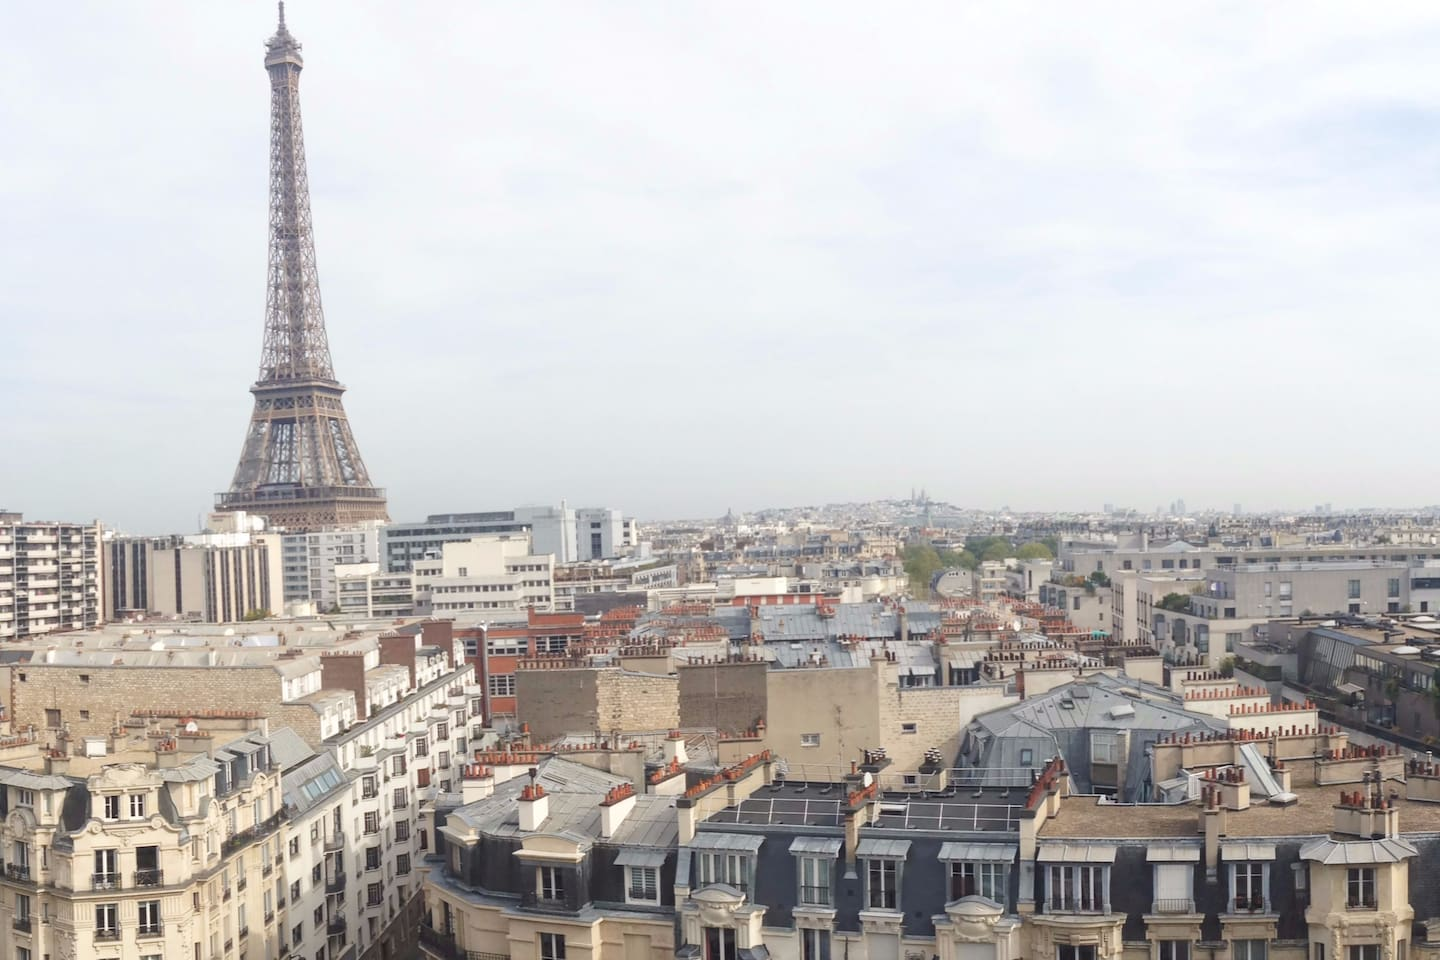 30 m² studio with 10 meters long terrace overlooking Paris and the Eiffel Tower from last floor - 11th. 200 meters from the river SEINE and the Bir-Hakheim bridge. 100 meters from Dupleix metro Station (line 6).